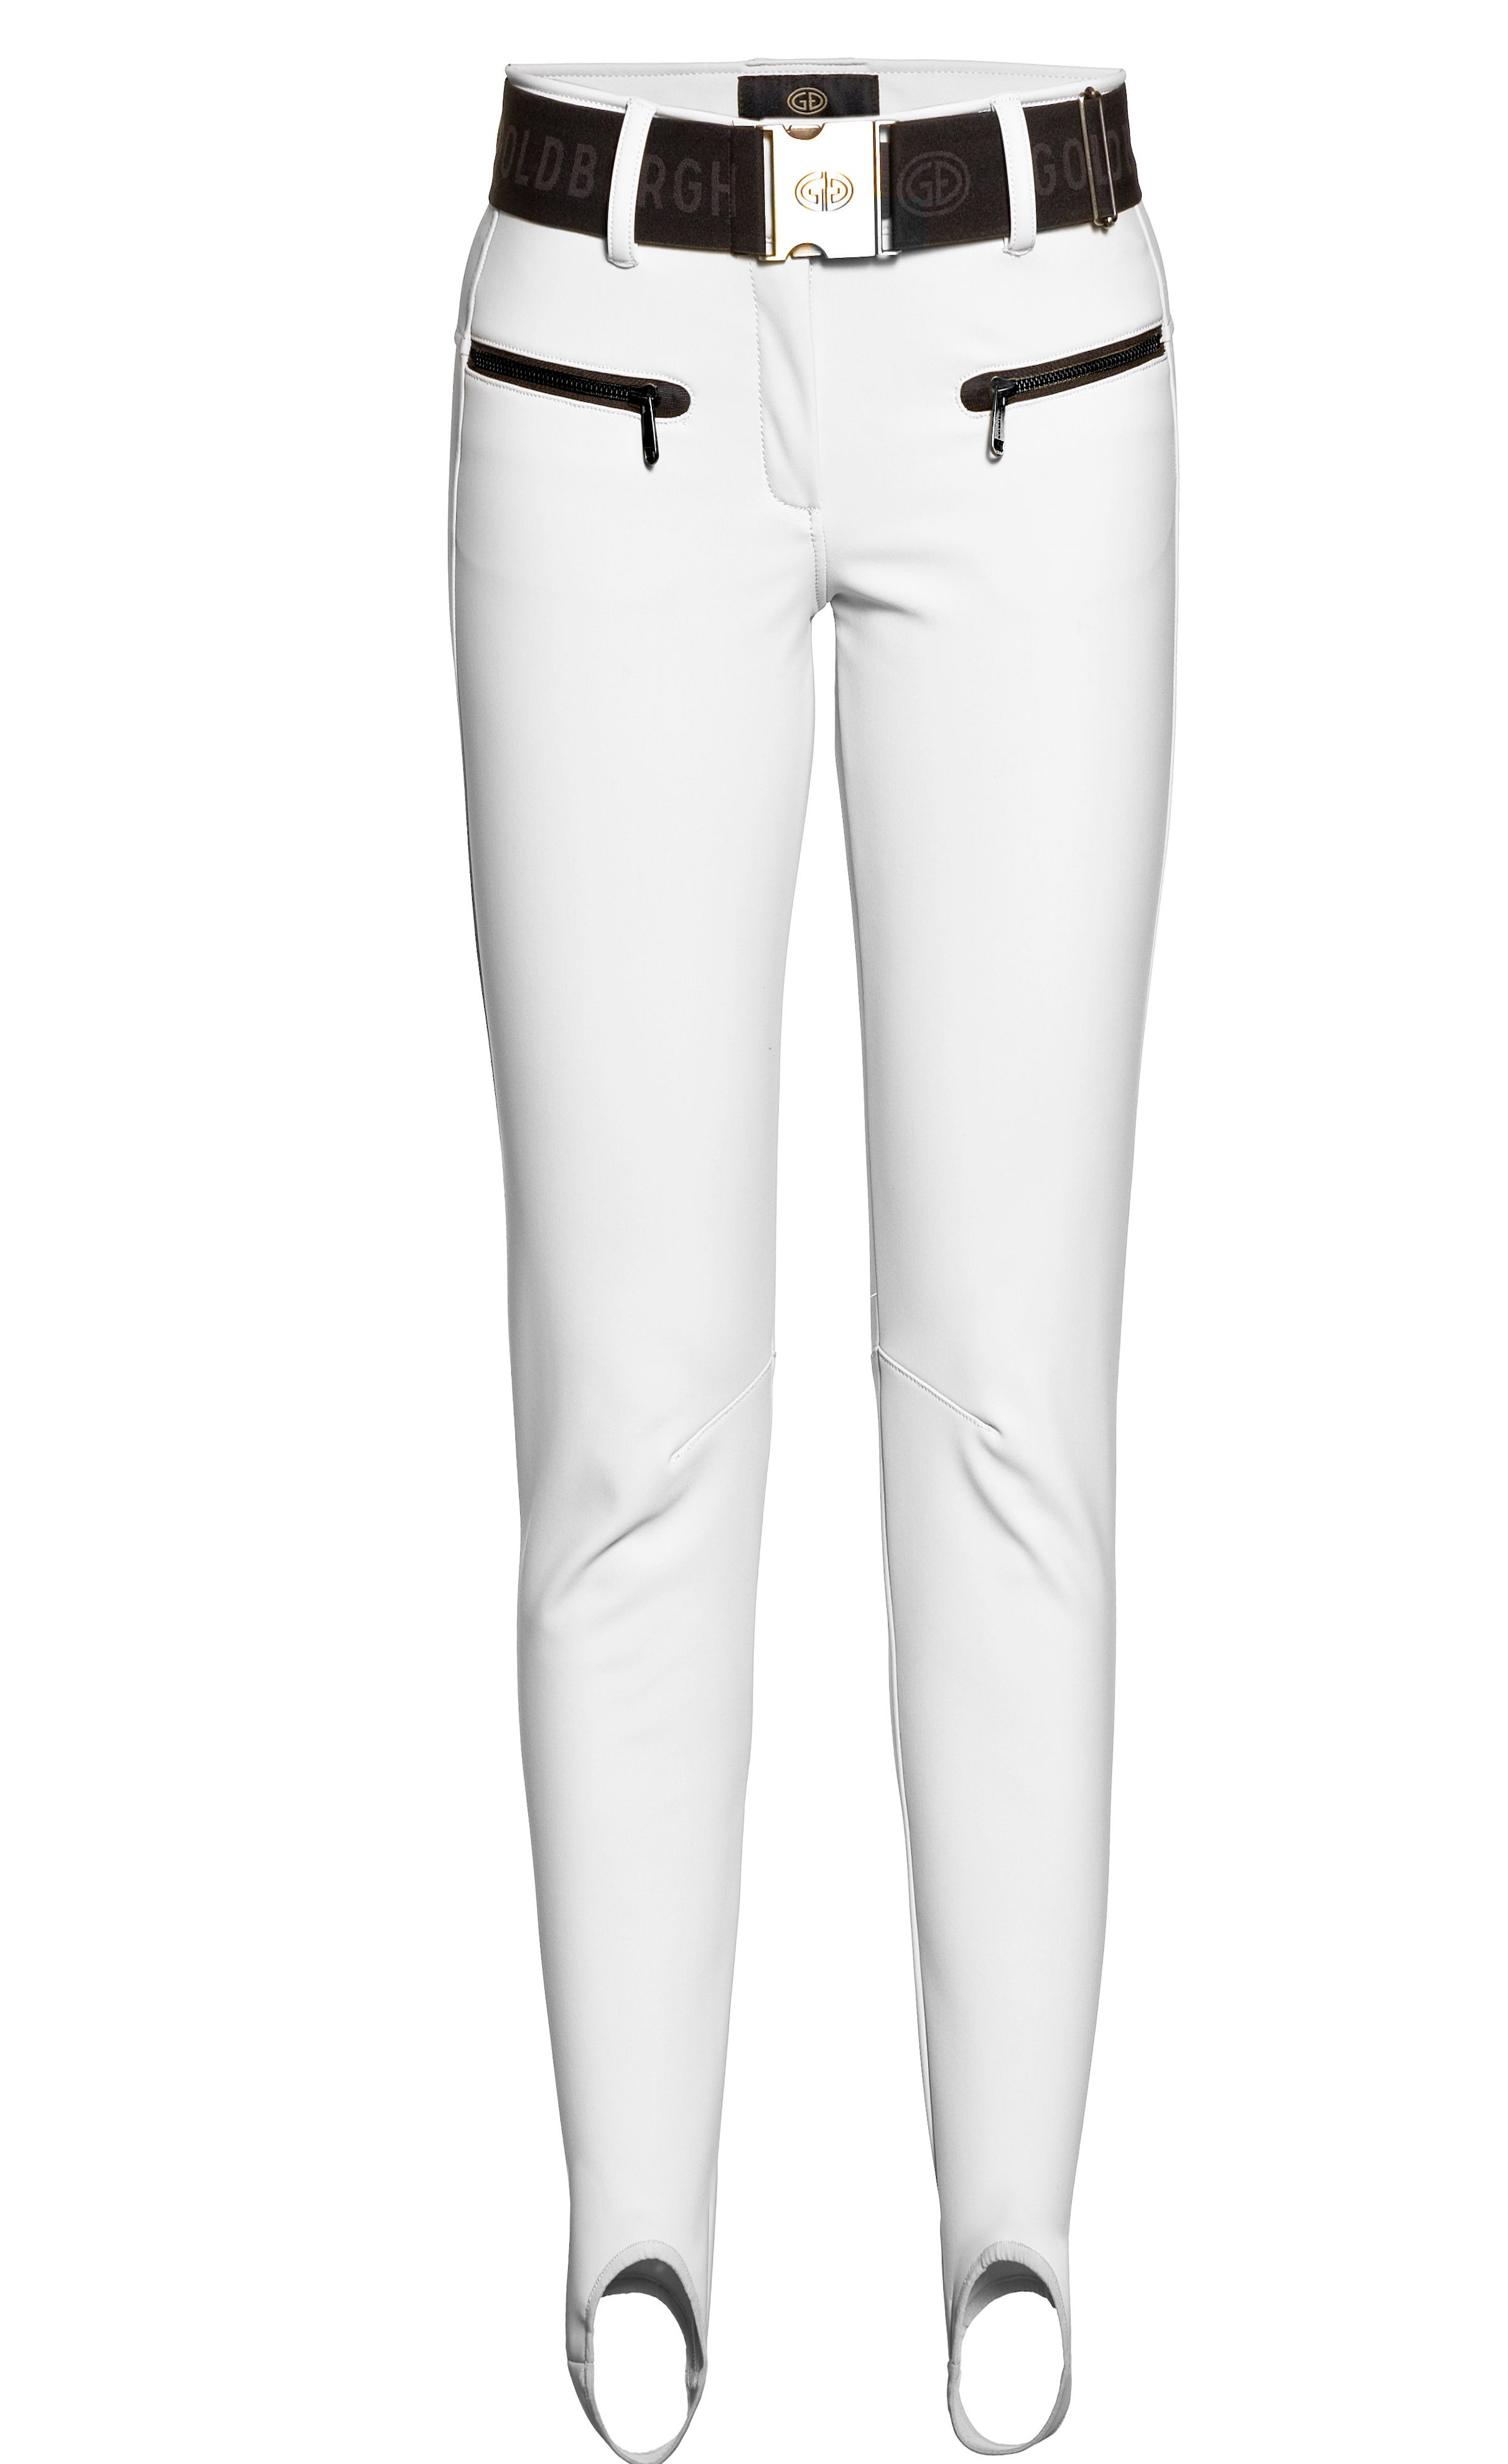 82832b6df2 Goldbergh Paris skinny stirrup ski pant at Winternational